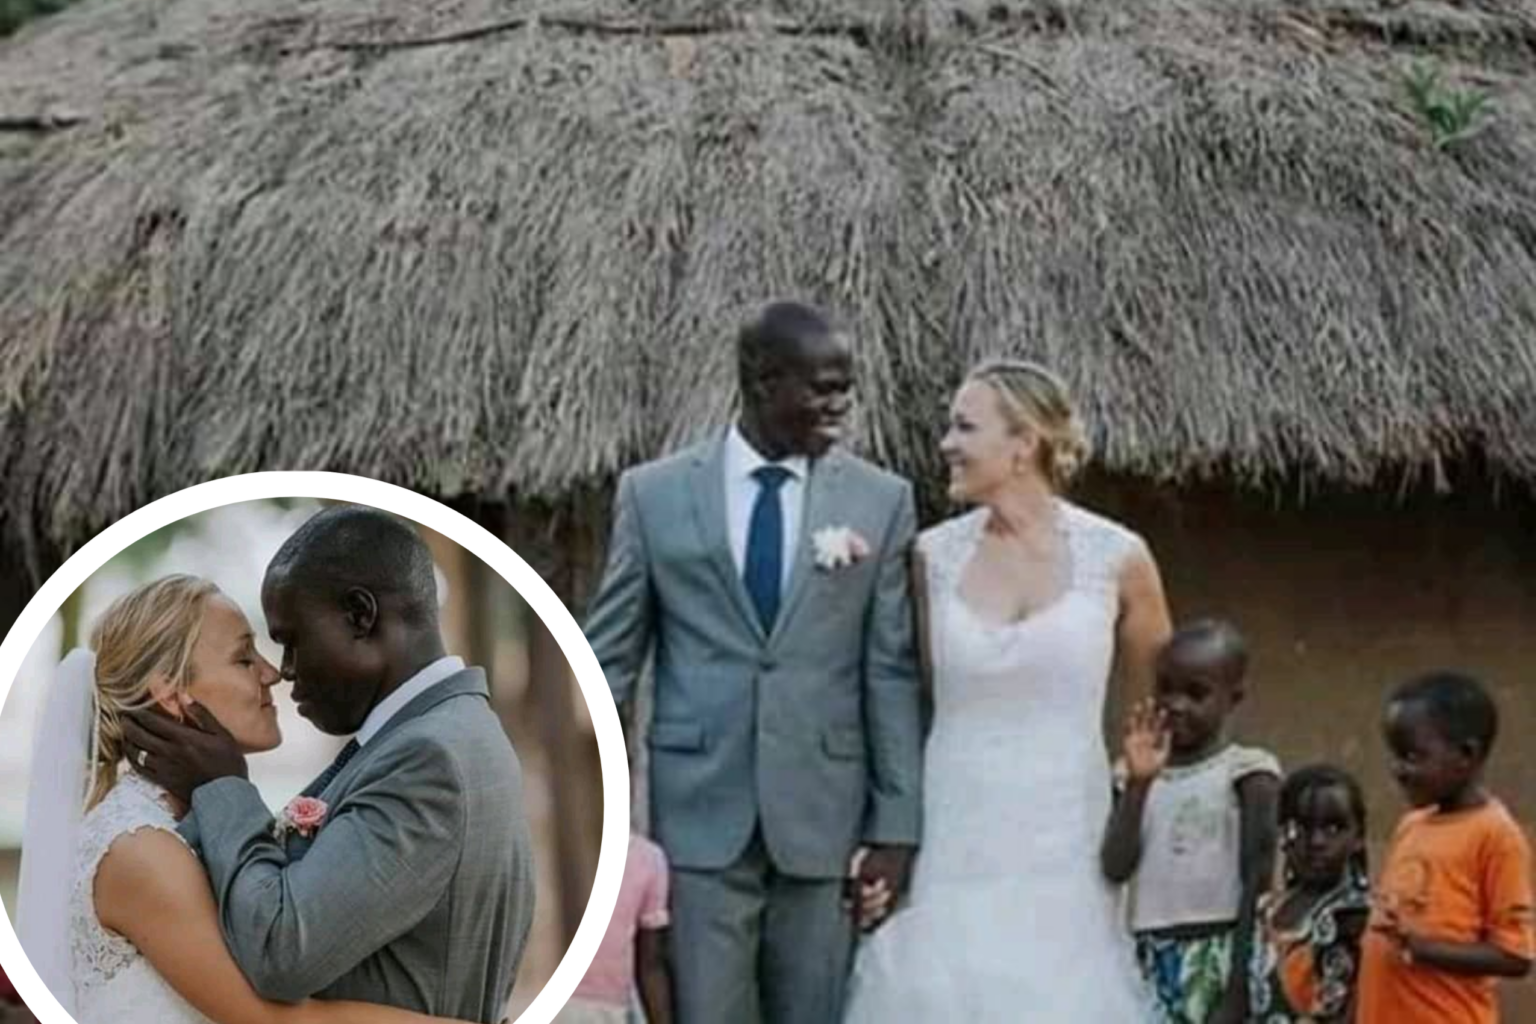 Canadian woman marries African father after his wife left him because of poverty